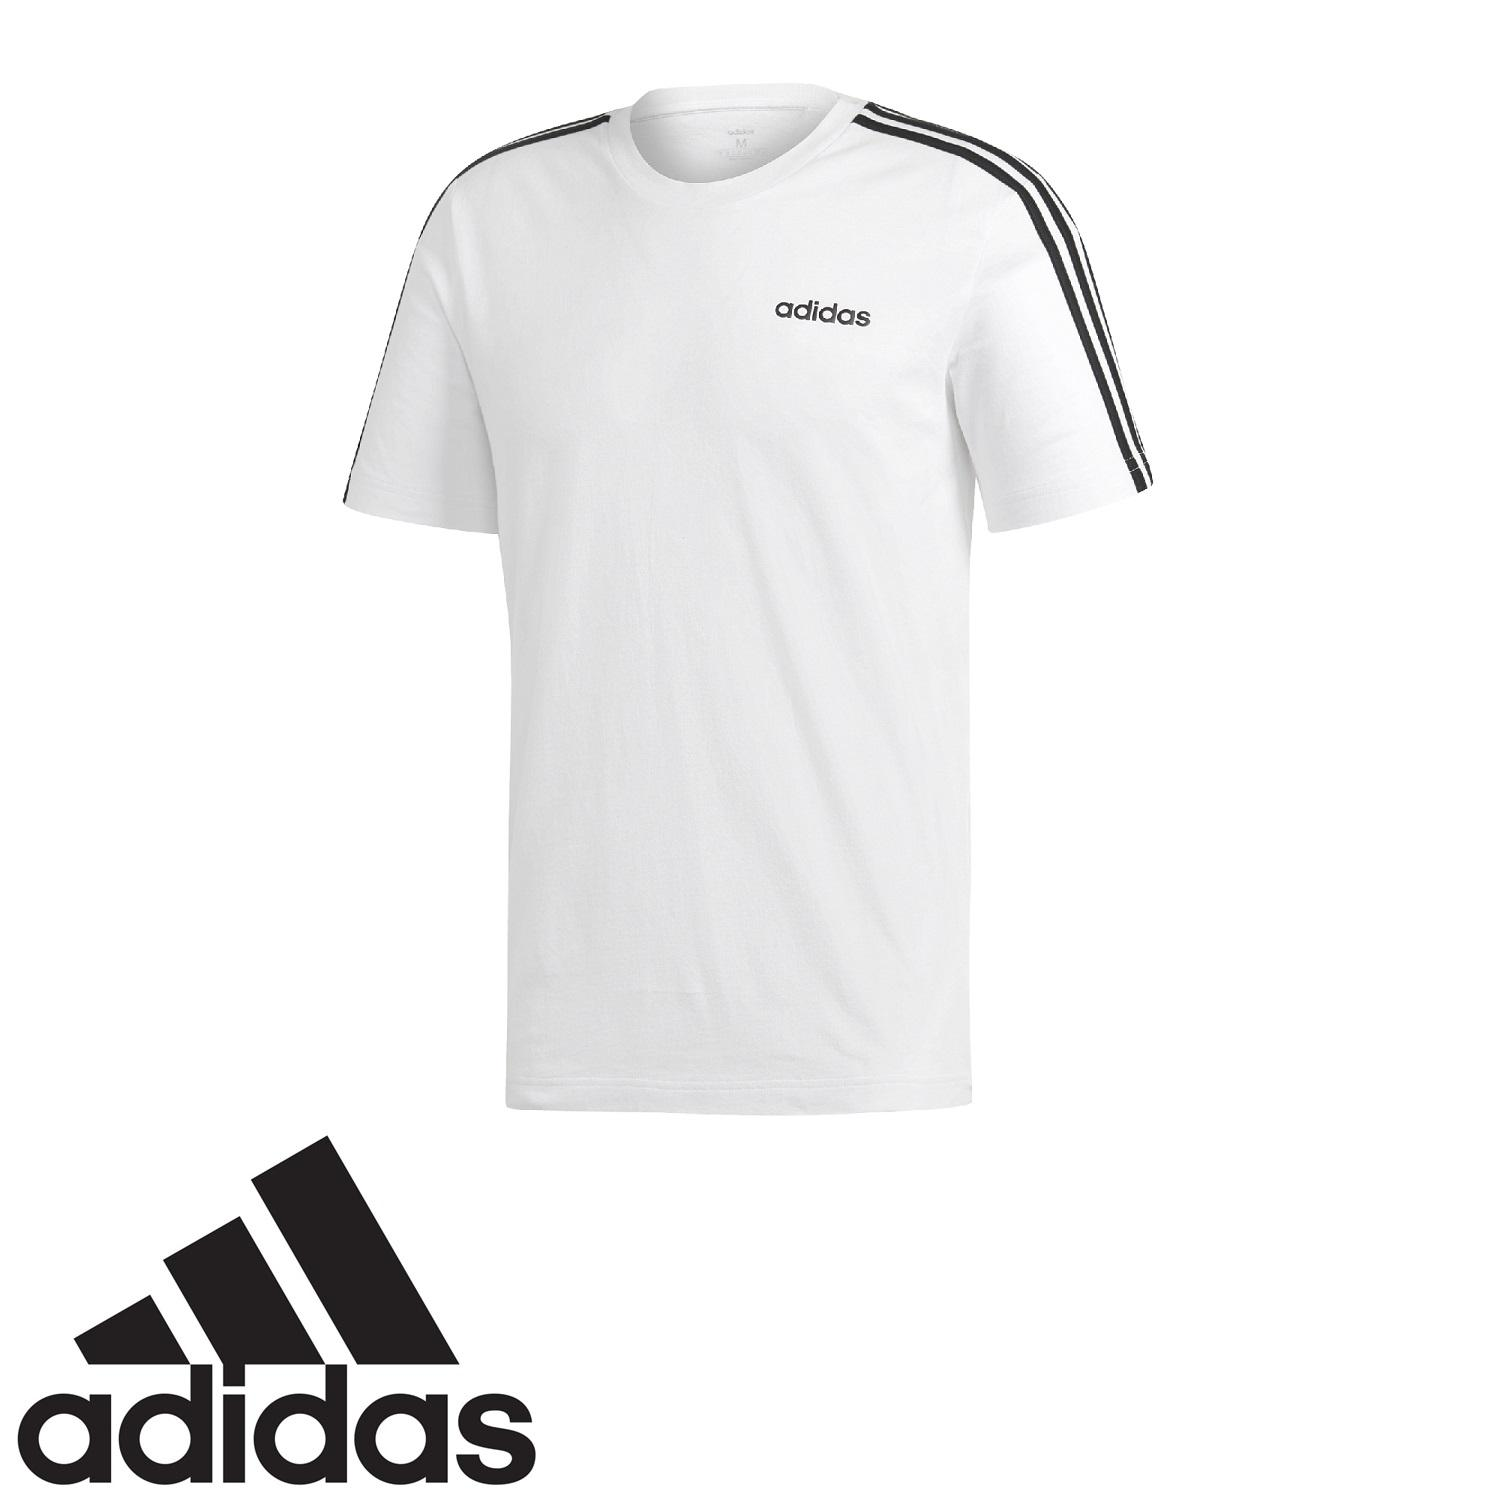 Buy Latest T Shirts & Tops at Best Price Online in